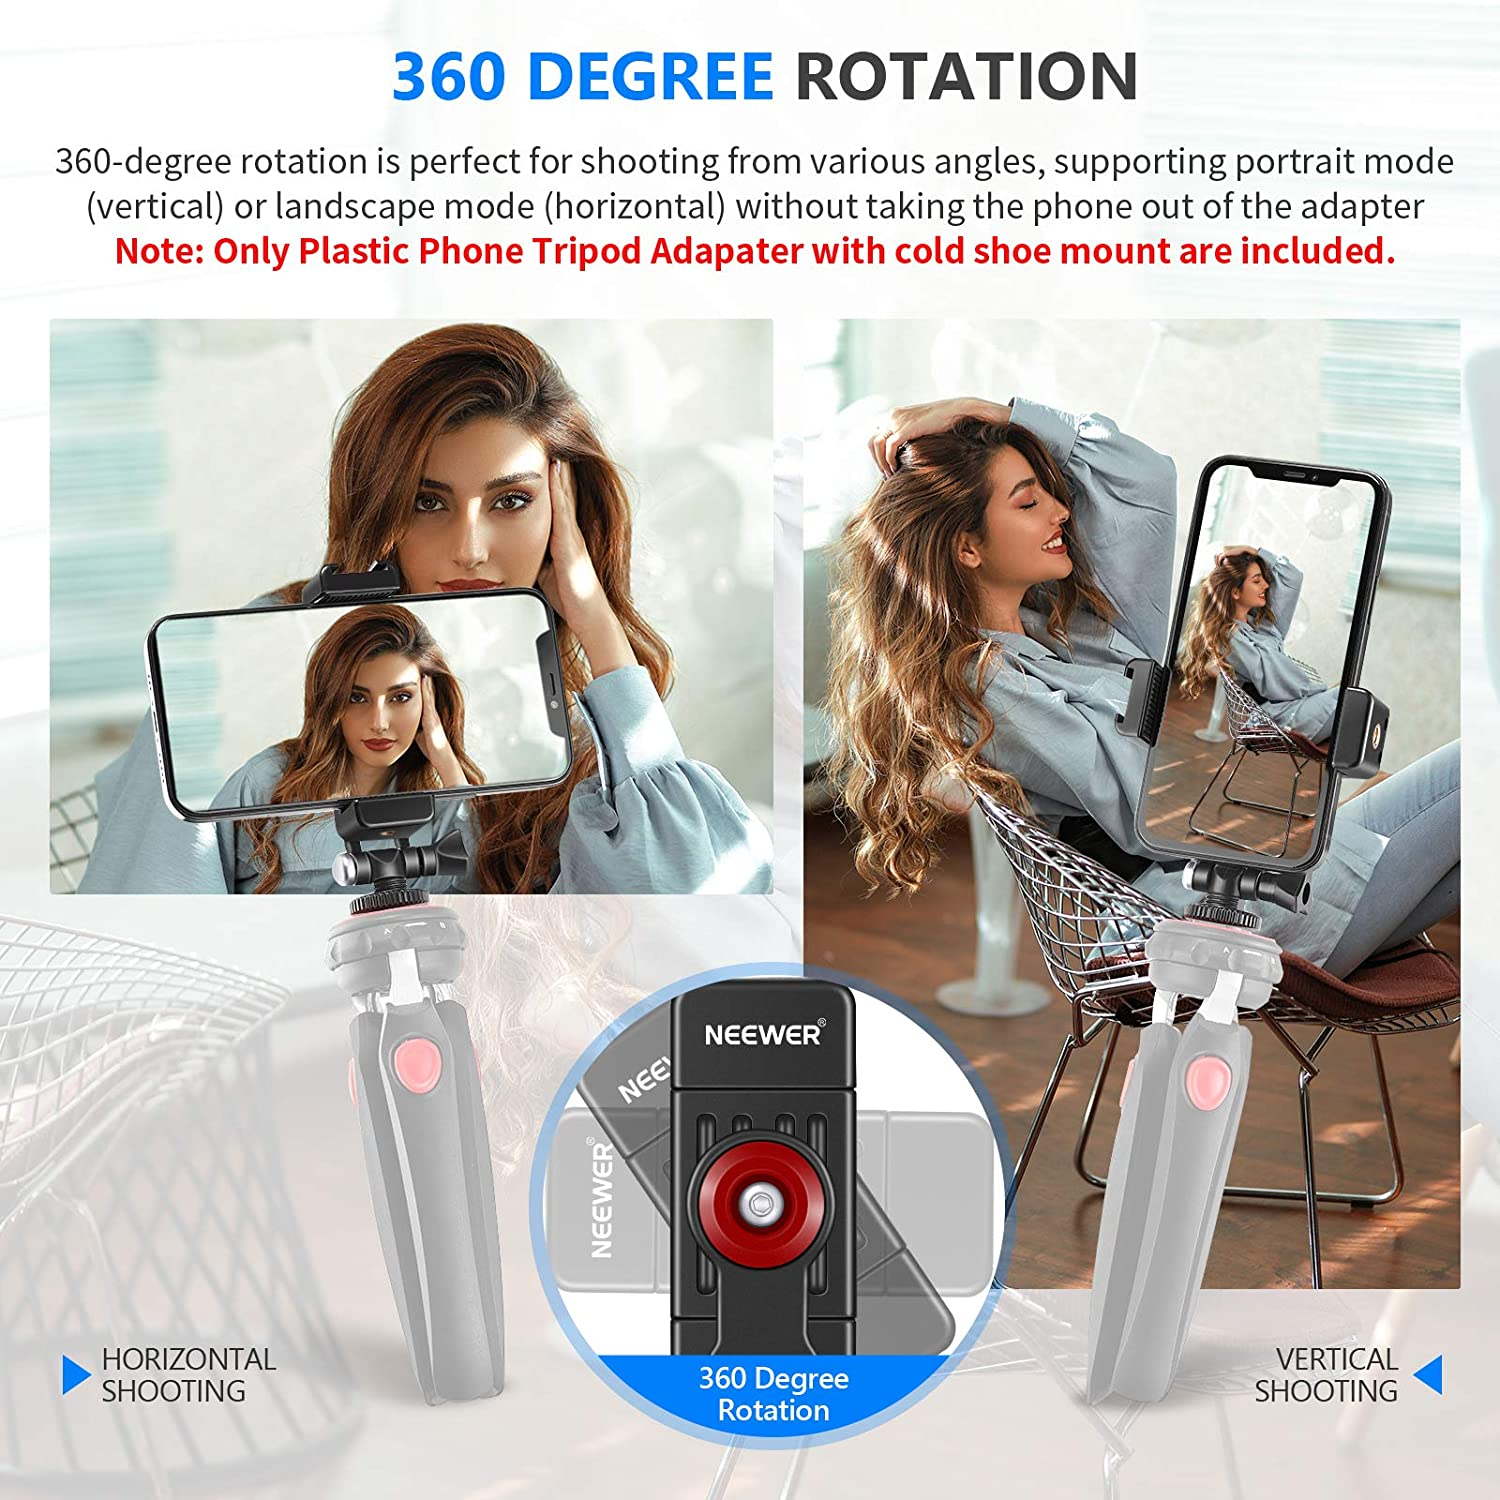 Neewer Phone Tripod Mount Adapter with 1//4 Cold Shoe Mount 1.9-3.9 Inches Width 360 Rotation Phone Holder Compatible with Nikon Canon Sony DSLR Cameras//DJI Ronin SC Gimbal Stabilizer//Ring Light